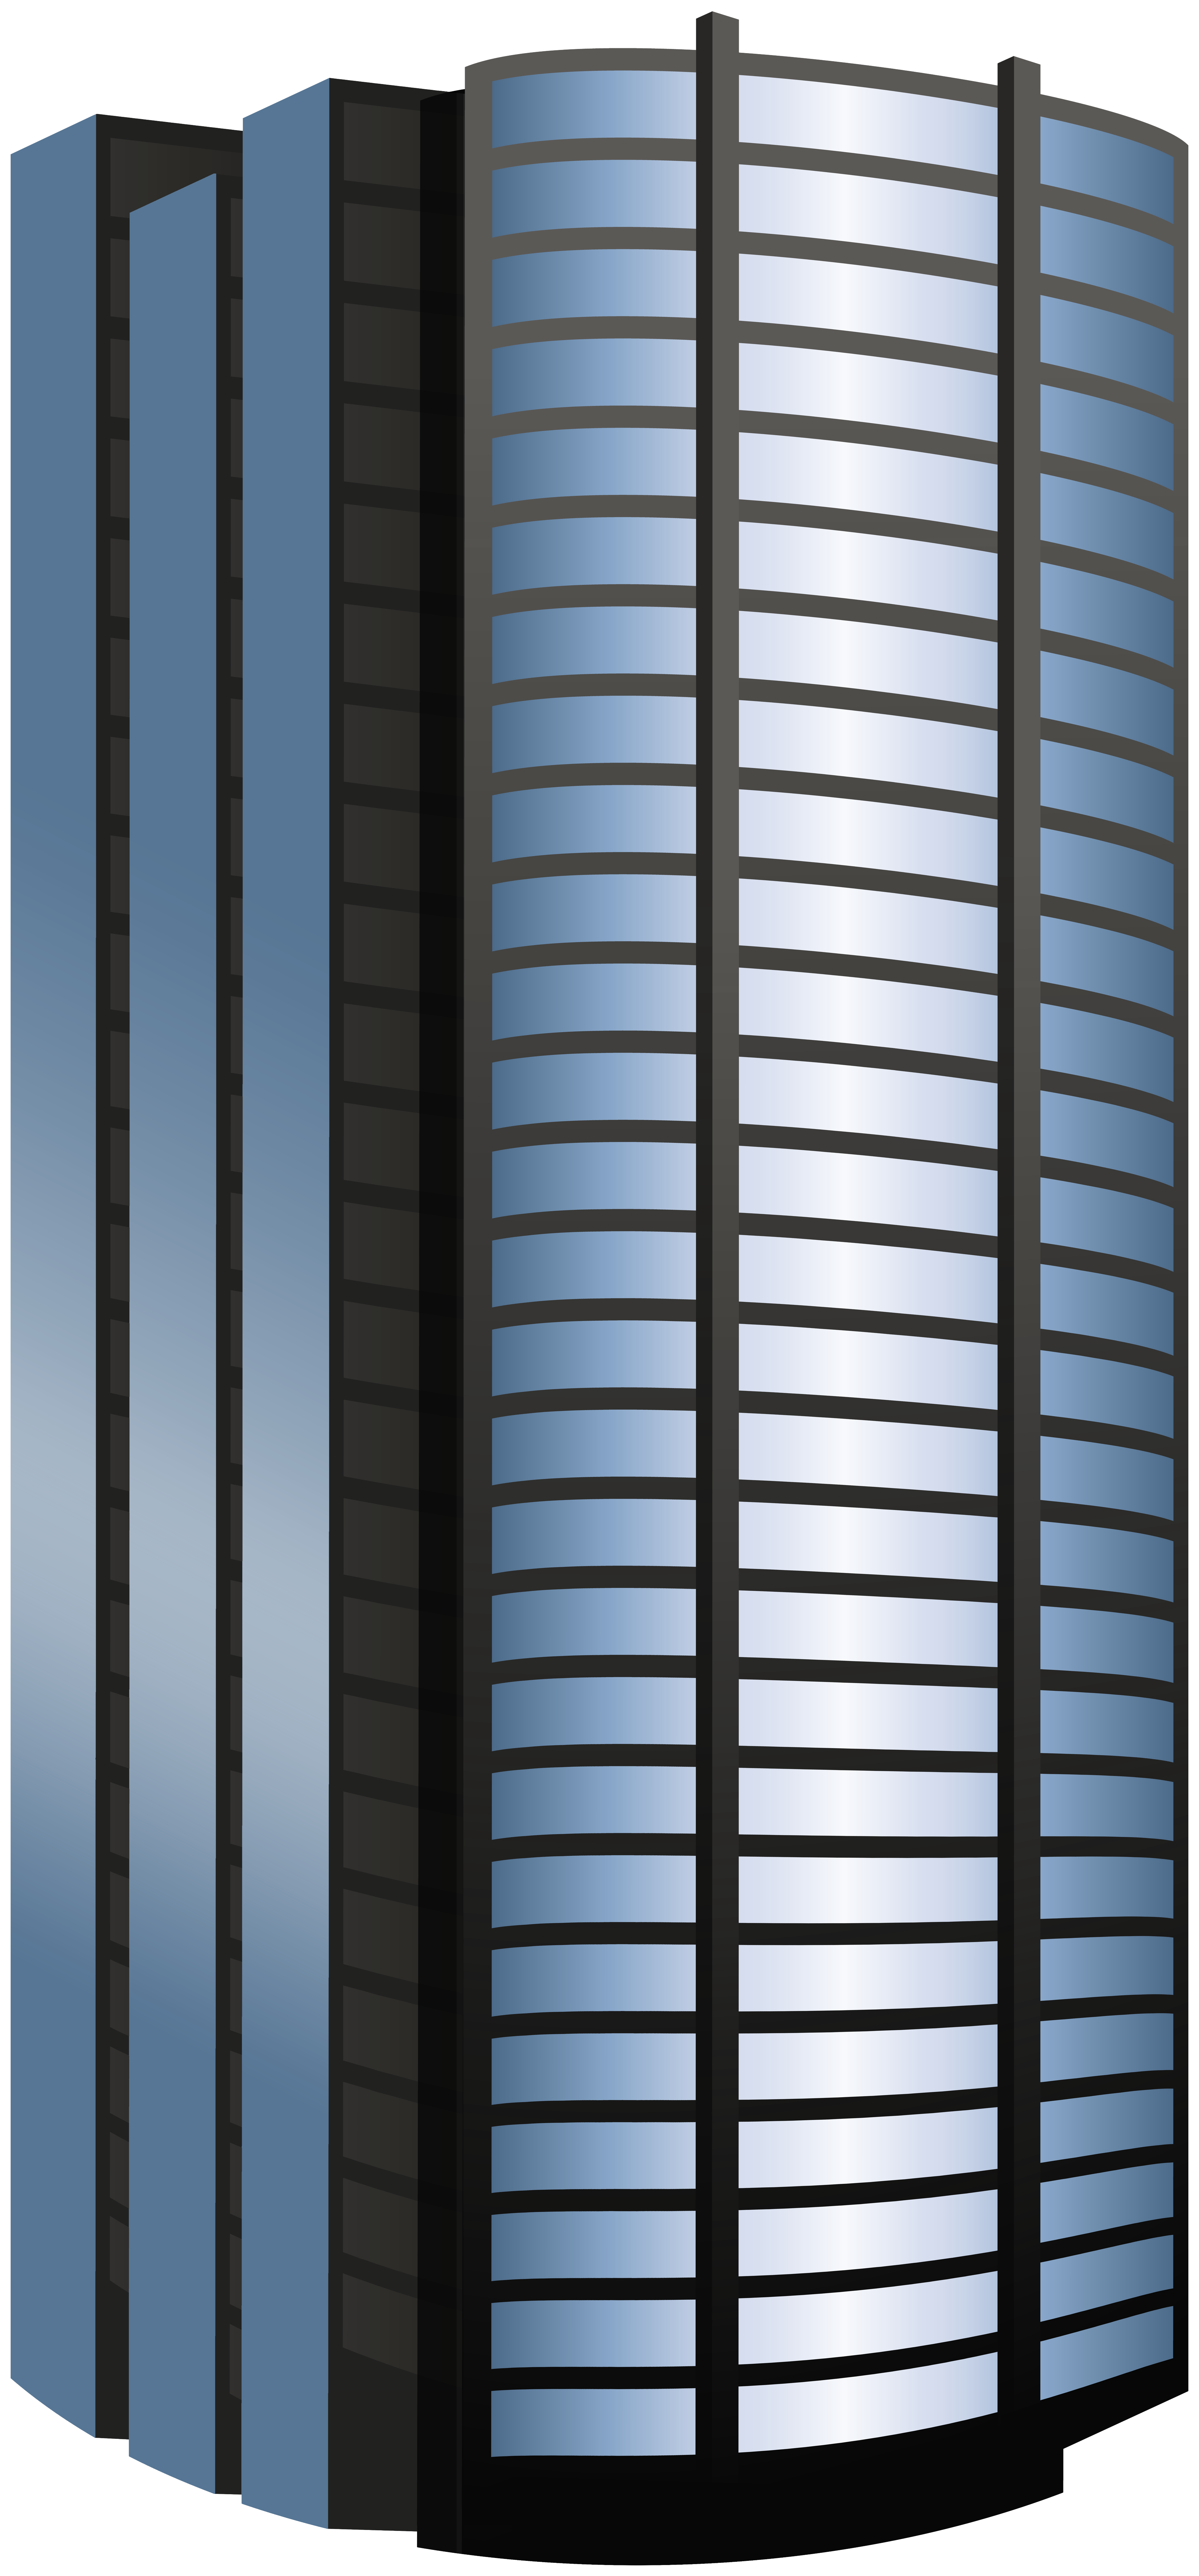 Skyscraper clipart architecture building. Blue round png best